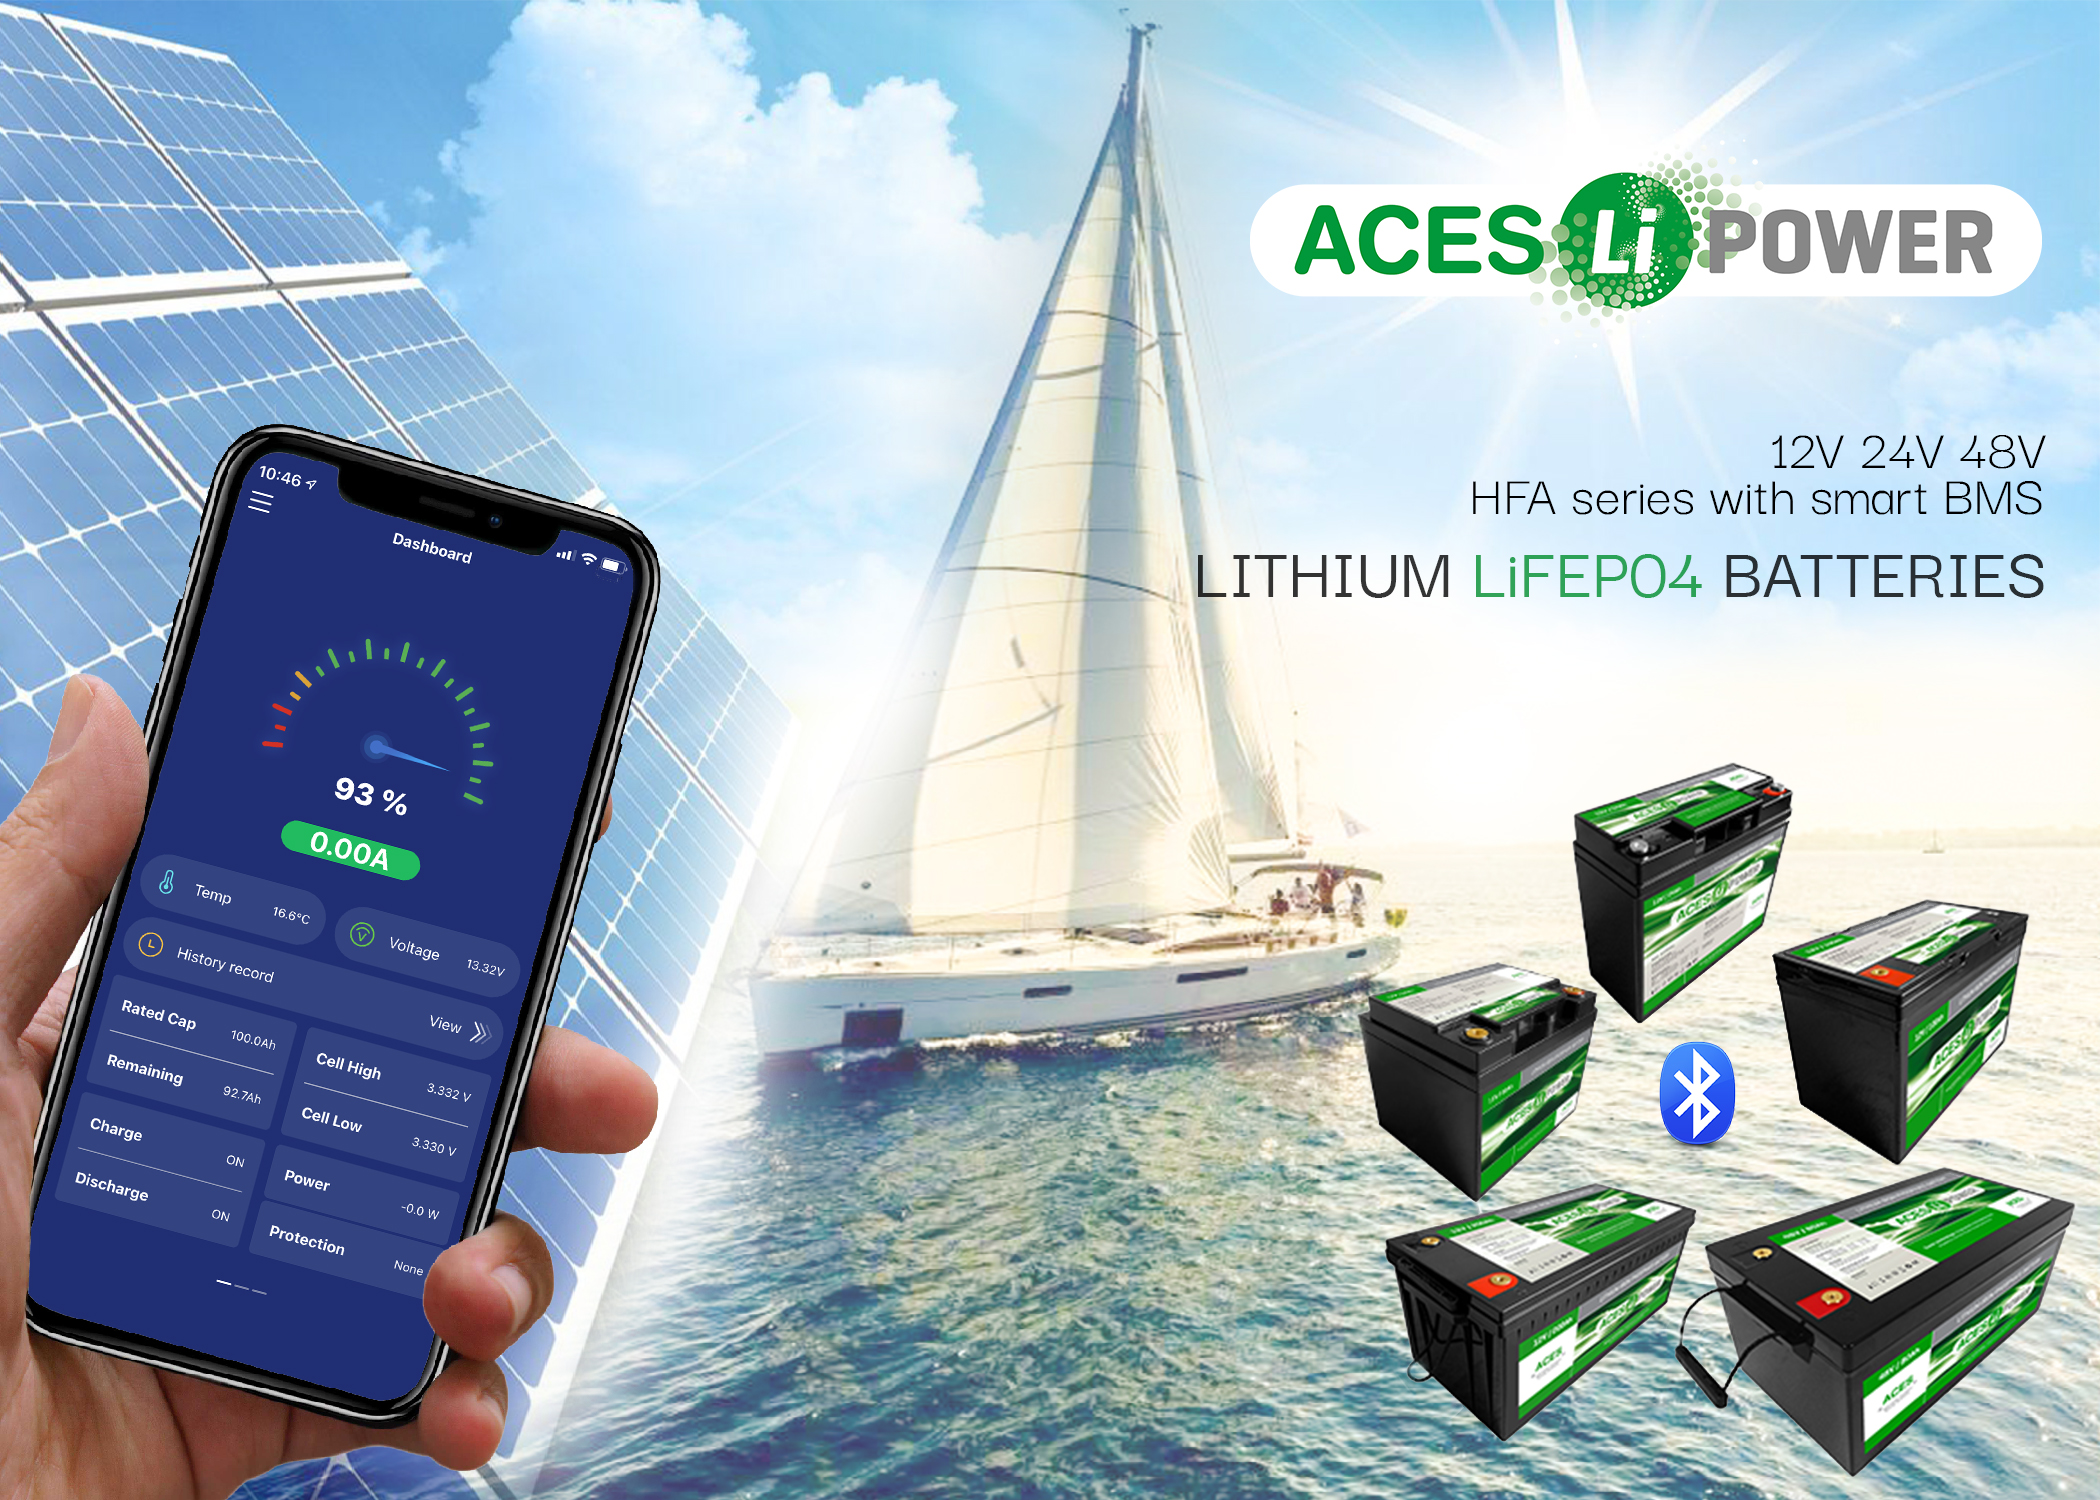 ACES Energy introduces new line of HFA Lithium batteries in ABS case